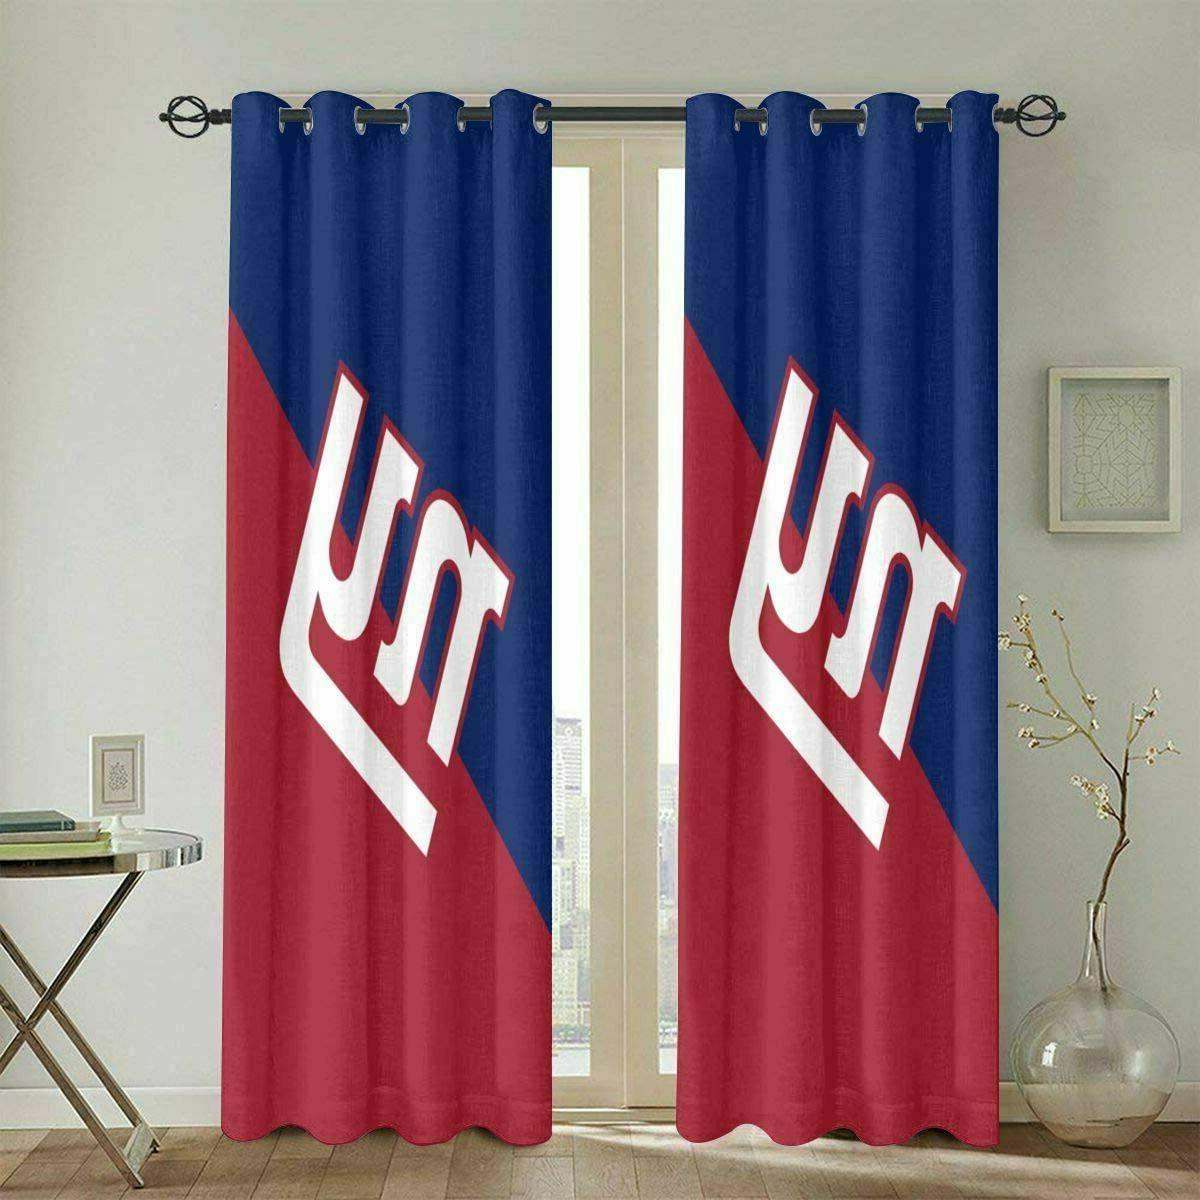 new york giants thicken curtains panels thermal